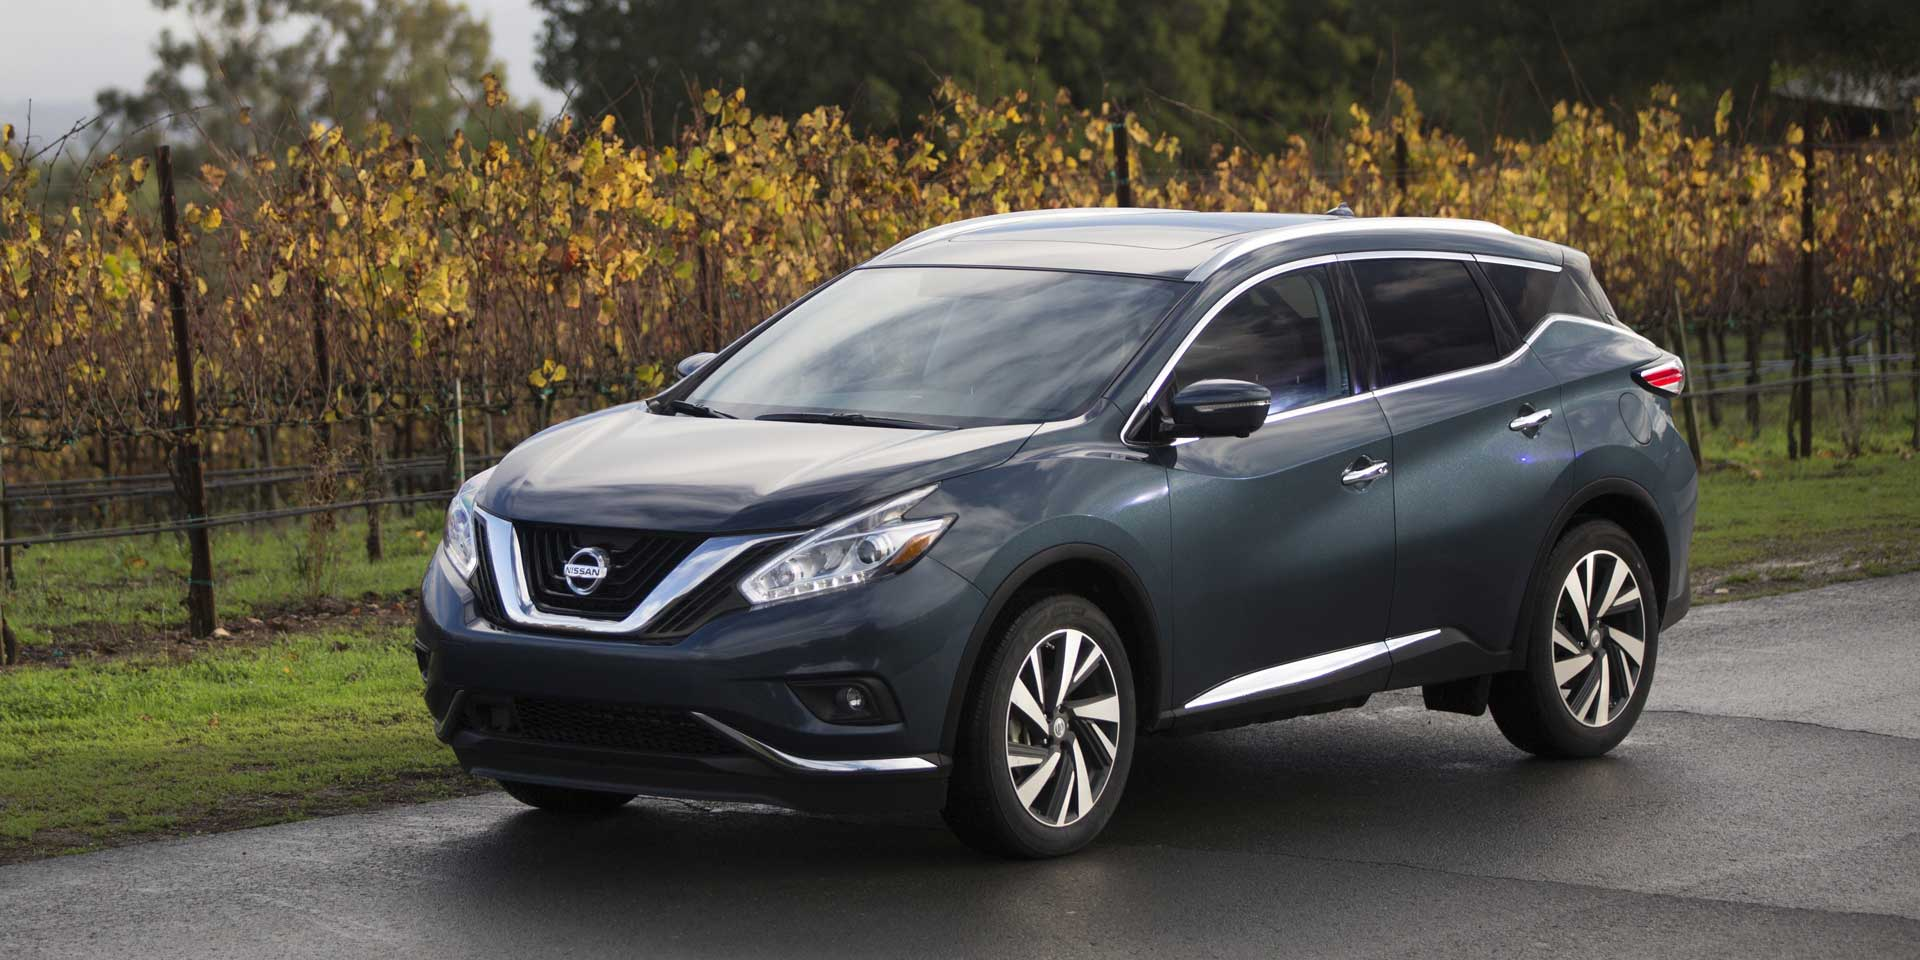 2018 - Nissan - Murano - Vehicles on Display | Chicago ...